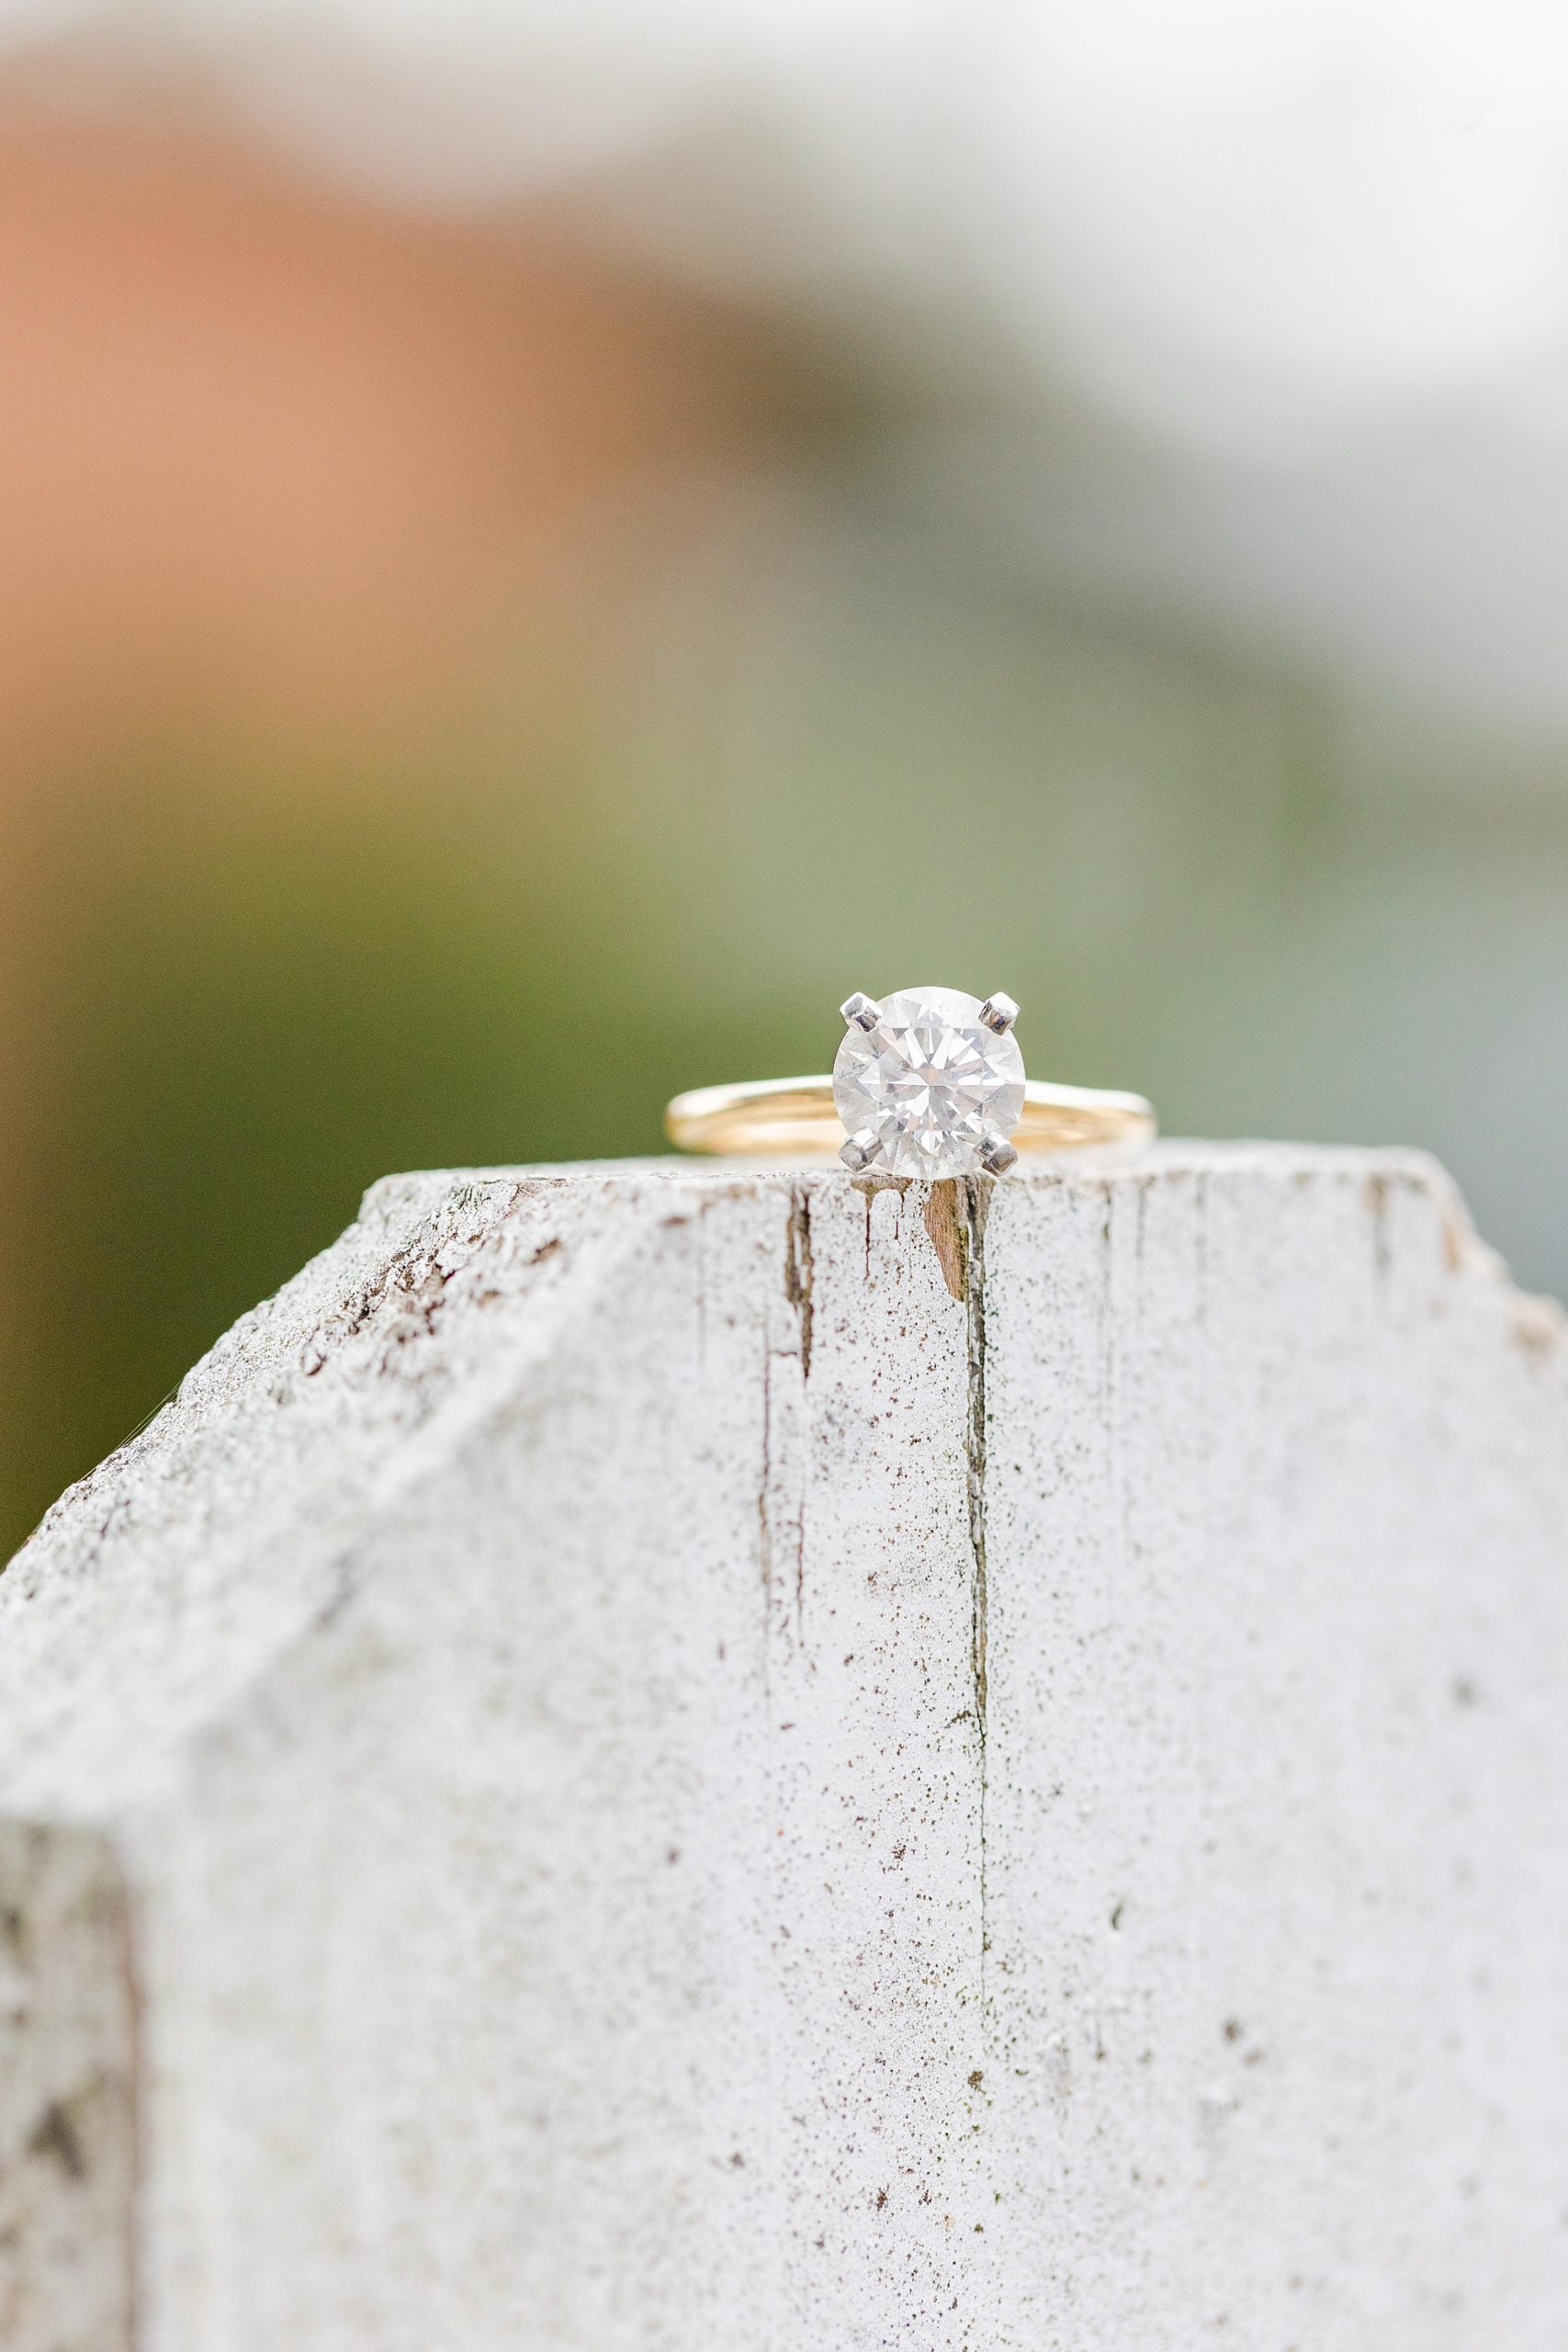 engagement ring rests on concrete slab during engagement photos